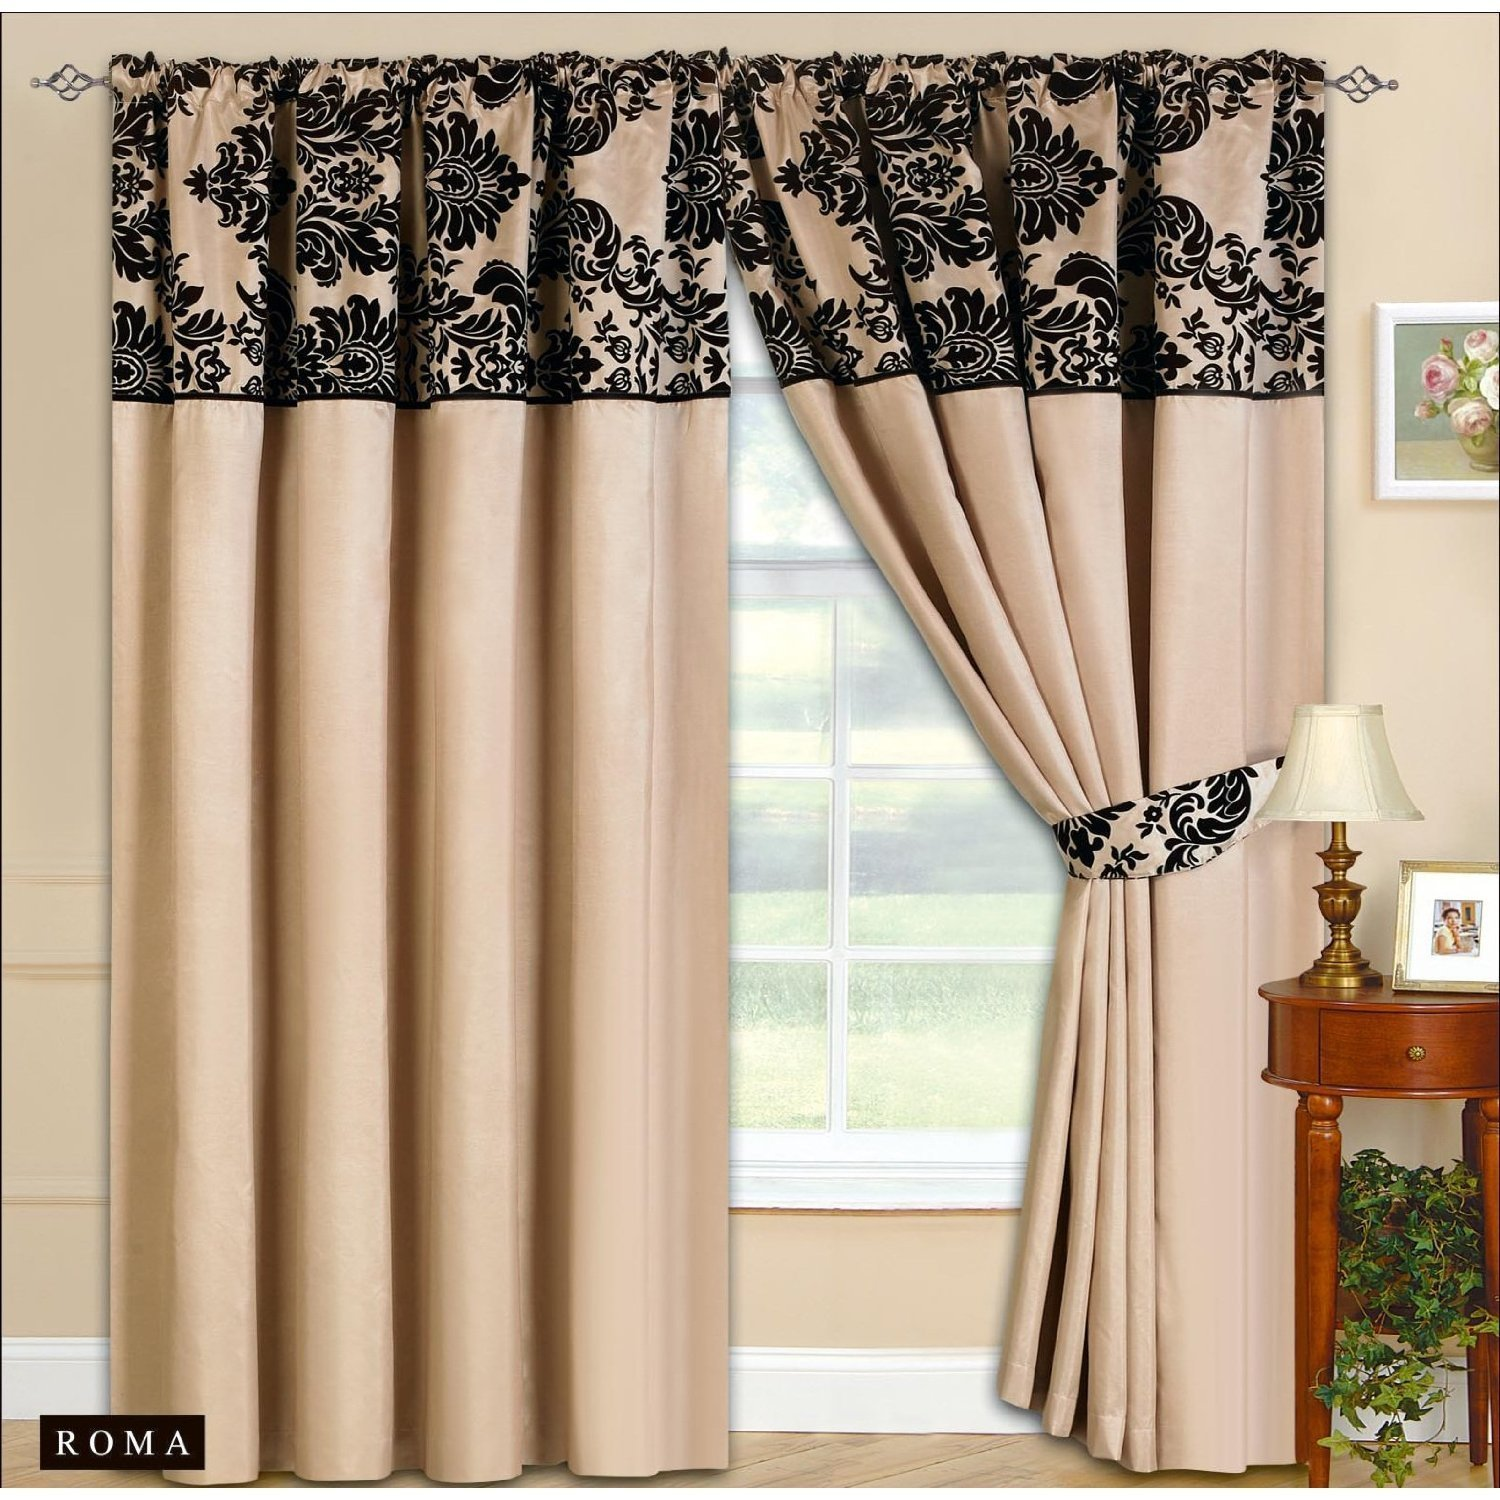 panel curtainworks cream rev block and kendall curtains grommet com curtain color black